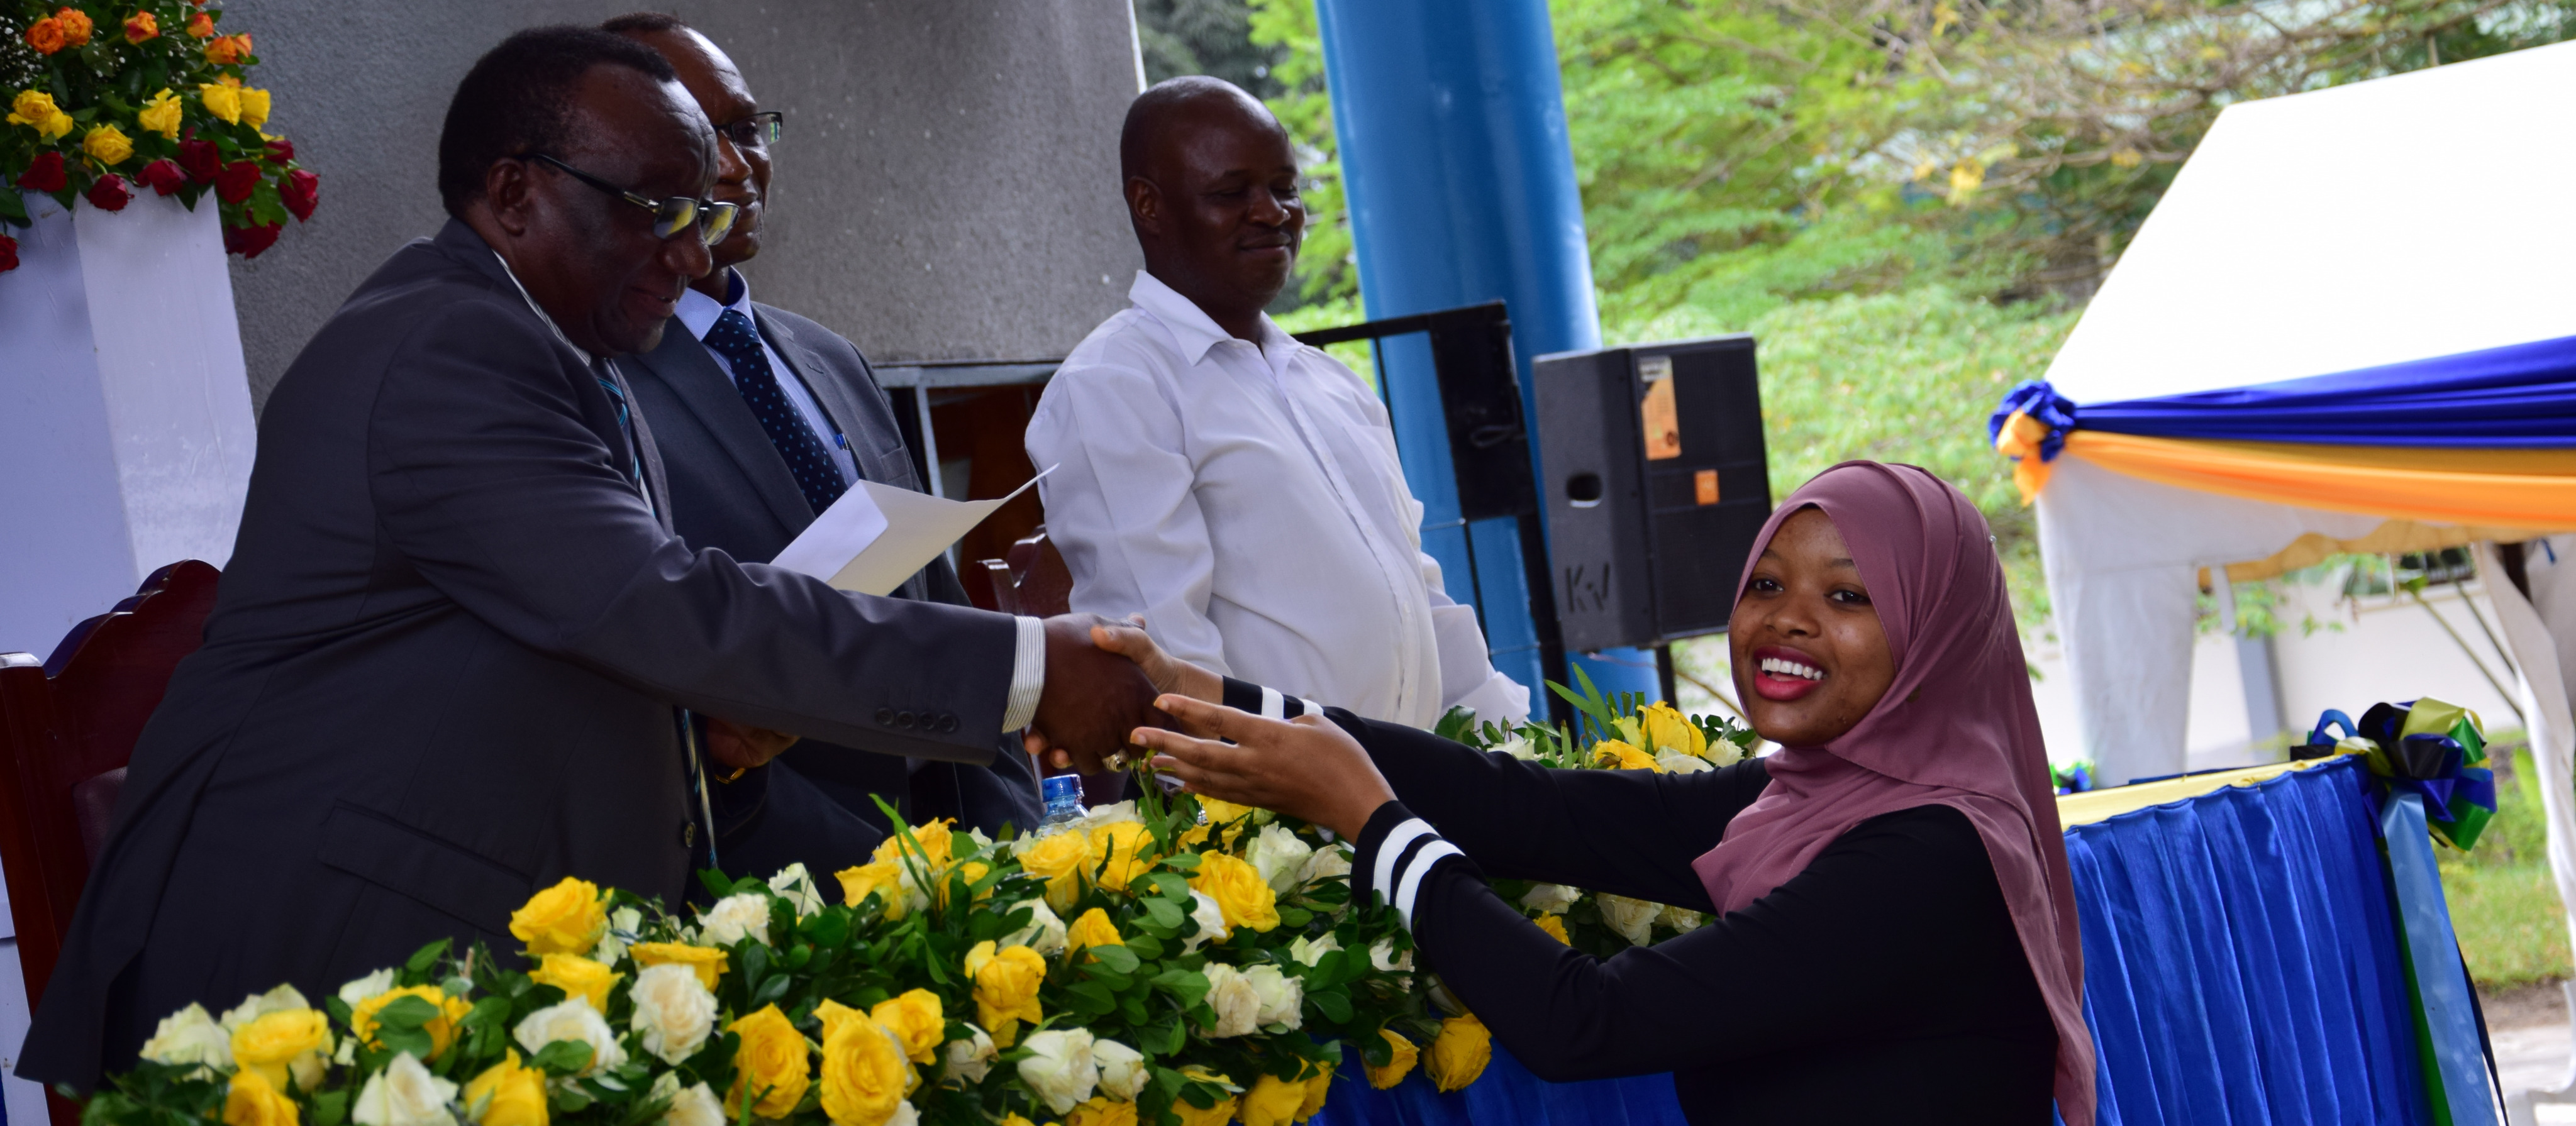 Ms Jasmine Mndeme, the overall best student for the year 2019/2020 receiving an award from the Ardhi University Vice Chancellor, Prof. Evaristo Liwa, during the prize awarding ceremony held at the University in December, 2020